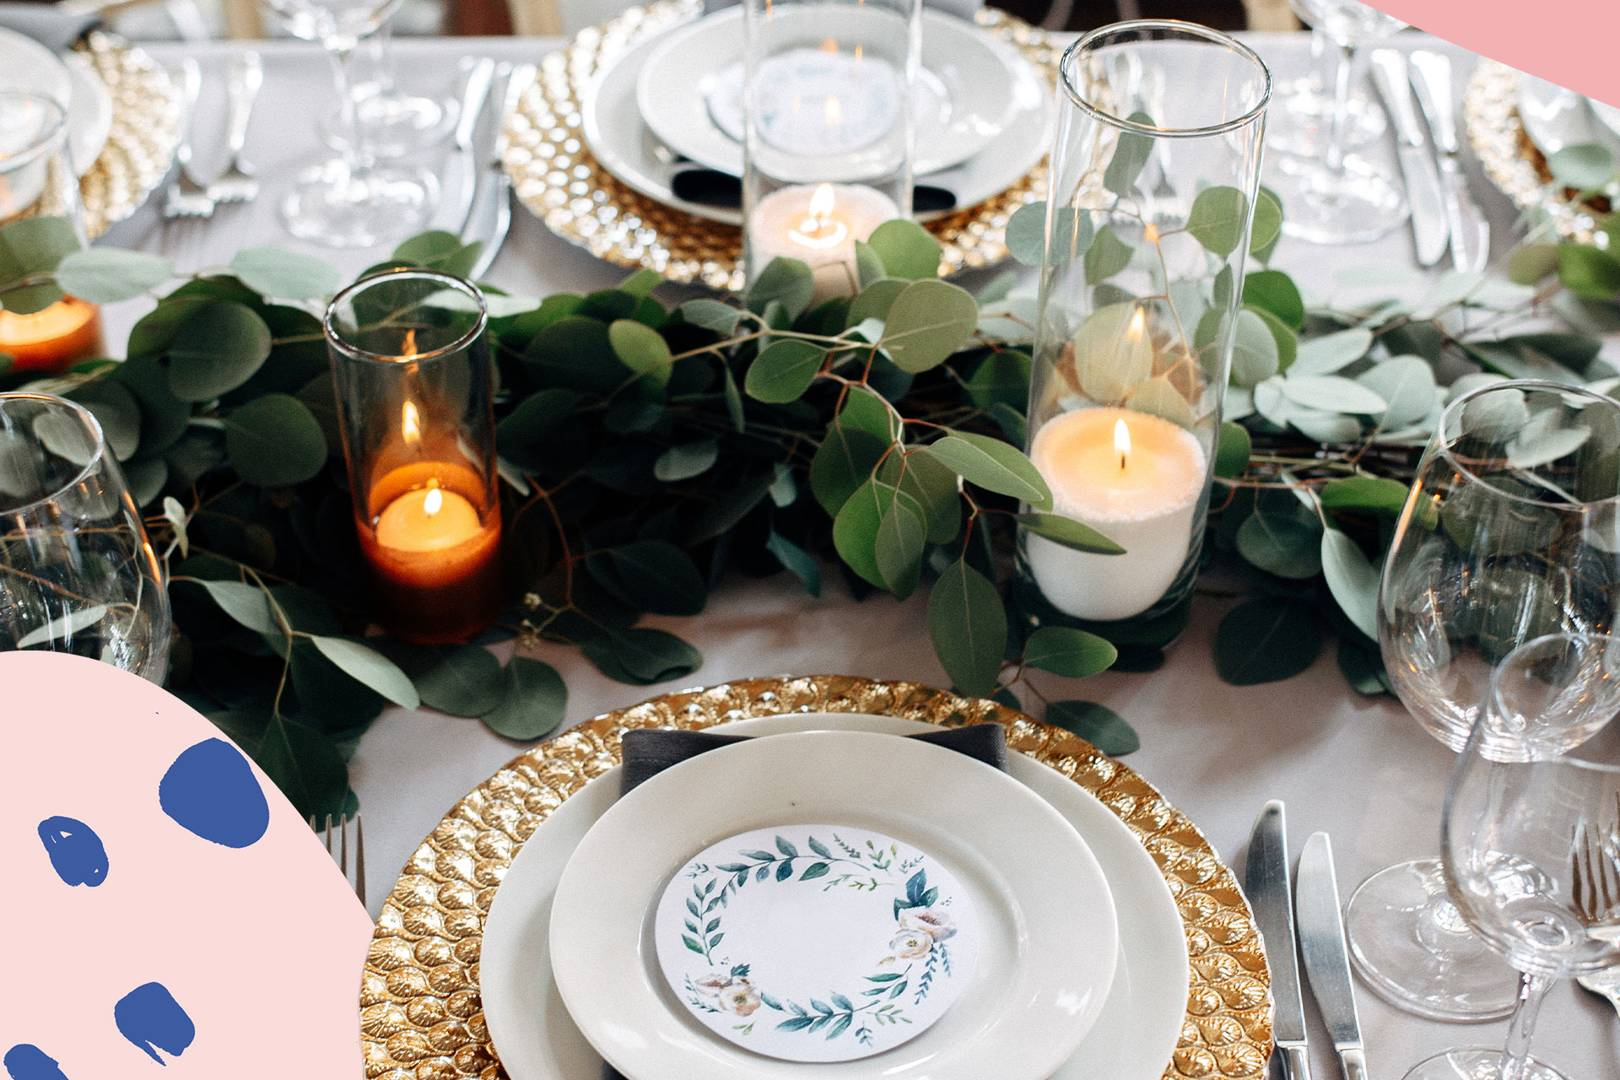 'Scenting a wedding' is the latest trend that makes a big day even better - here's how to do it